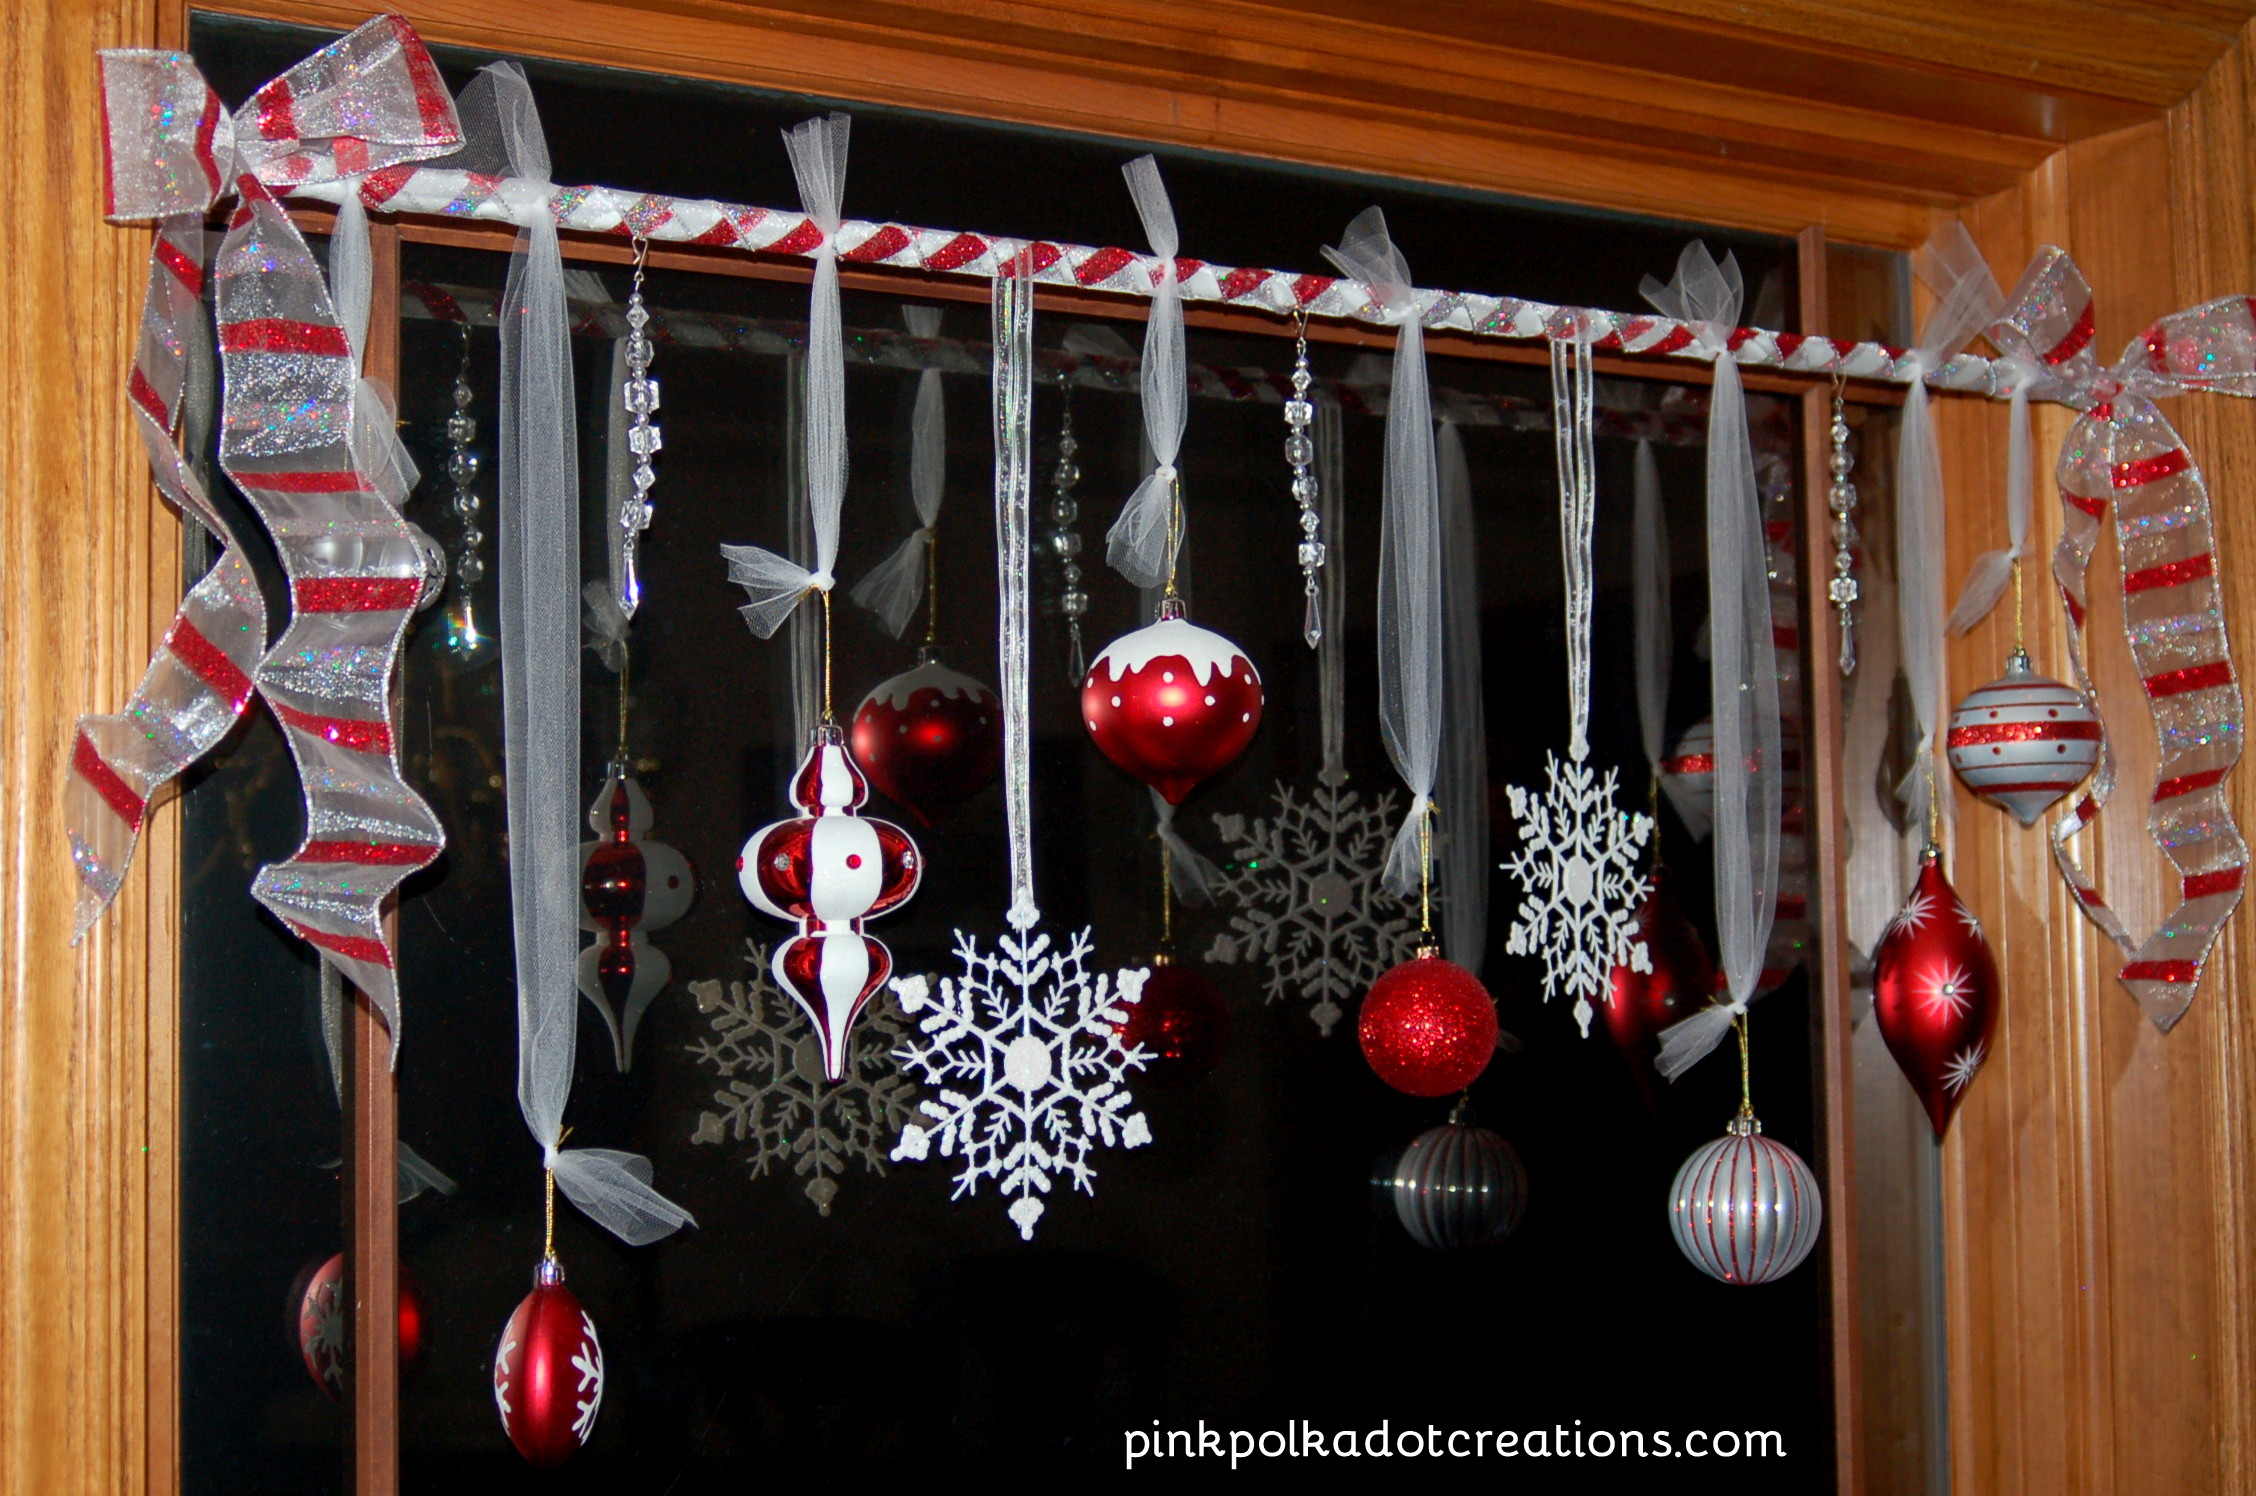 Christmas window treatments pink polka dot creations Christmas decorating diy